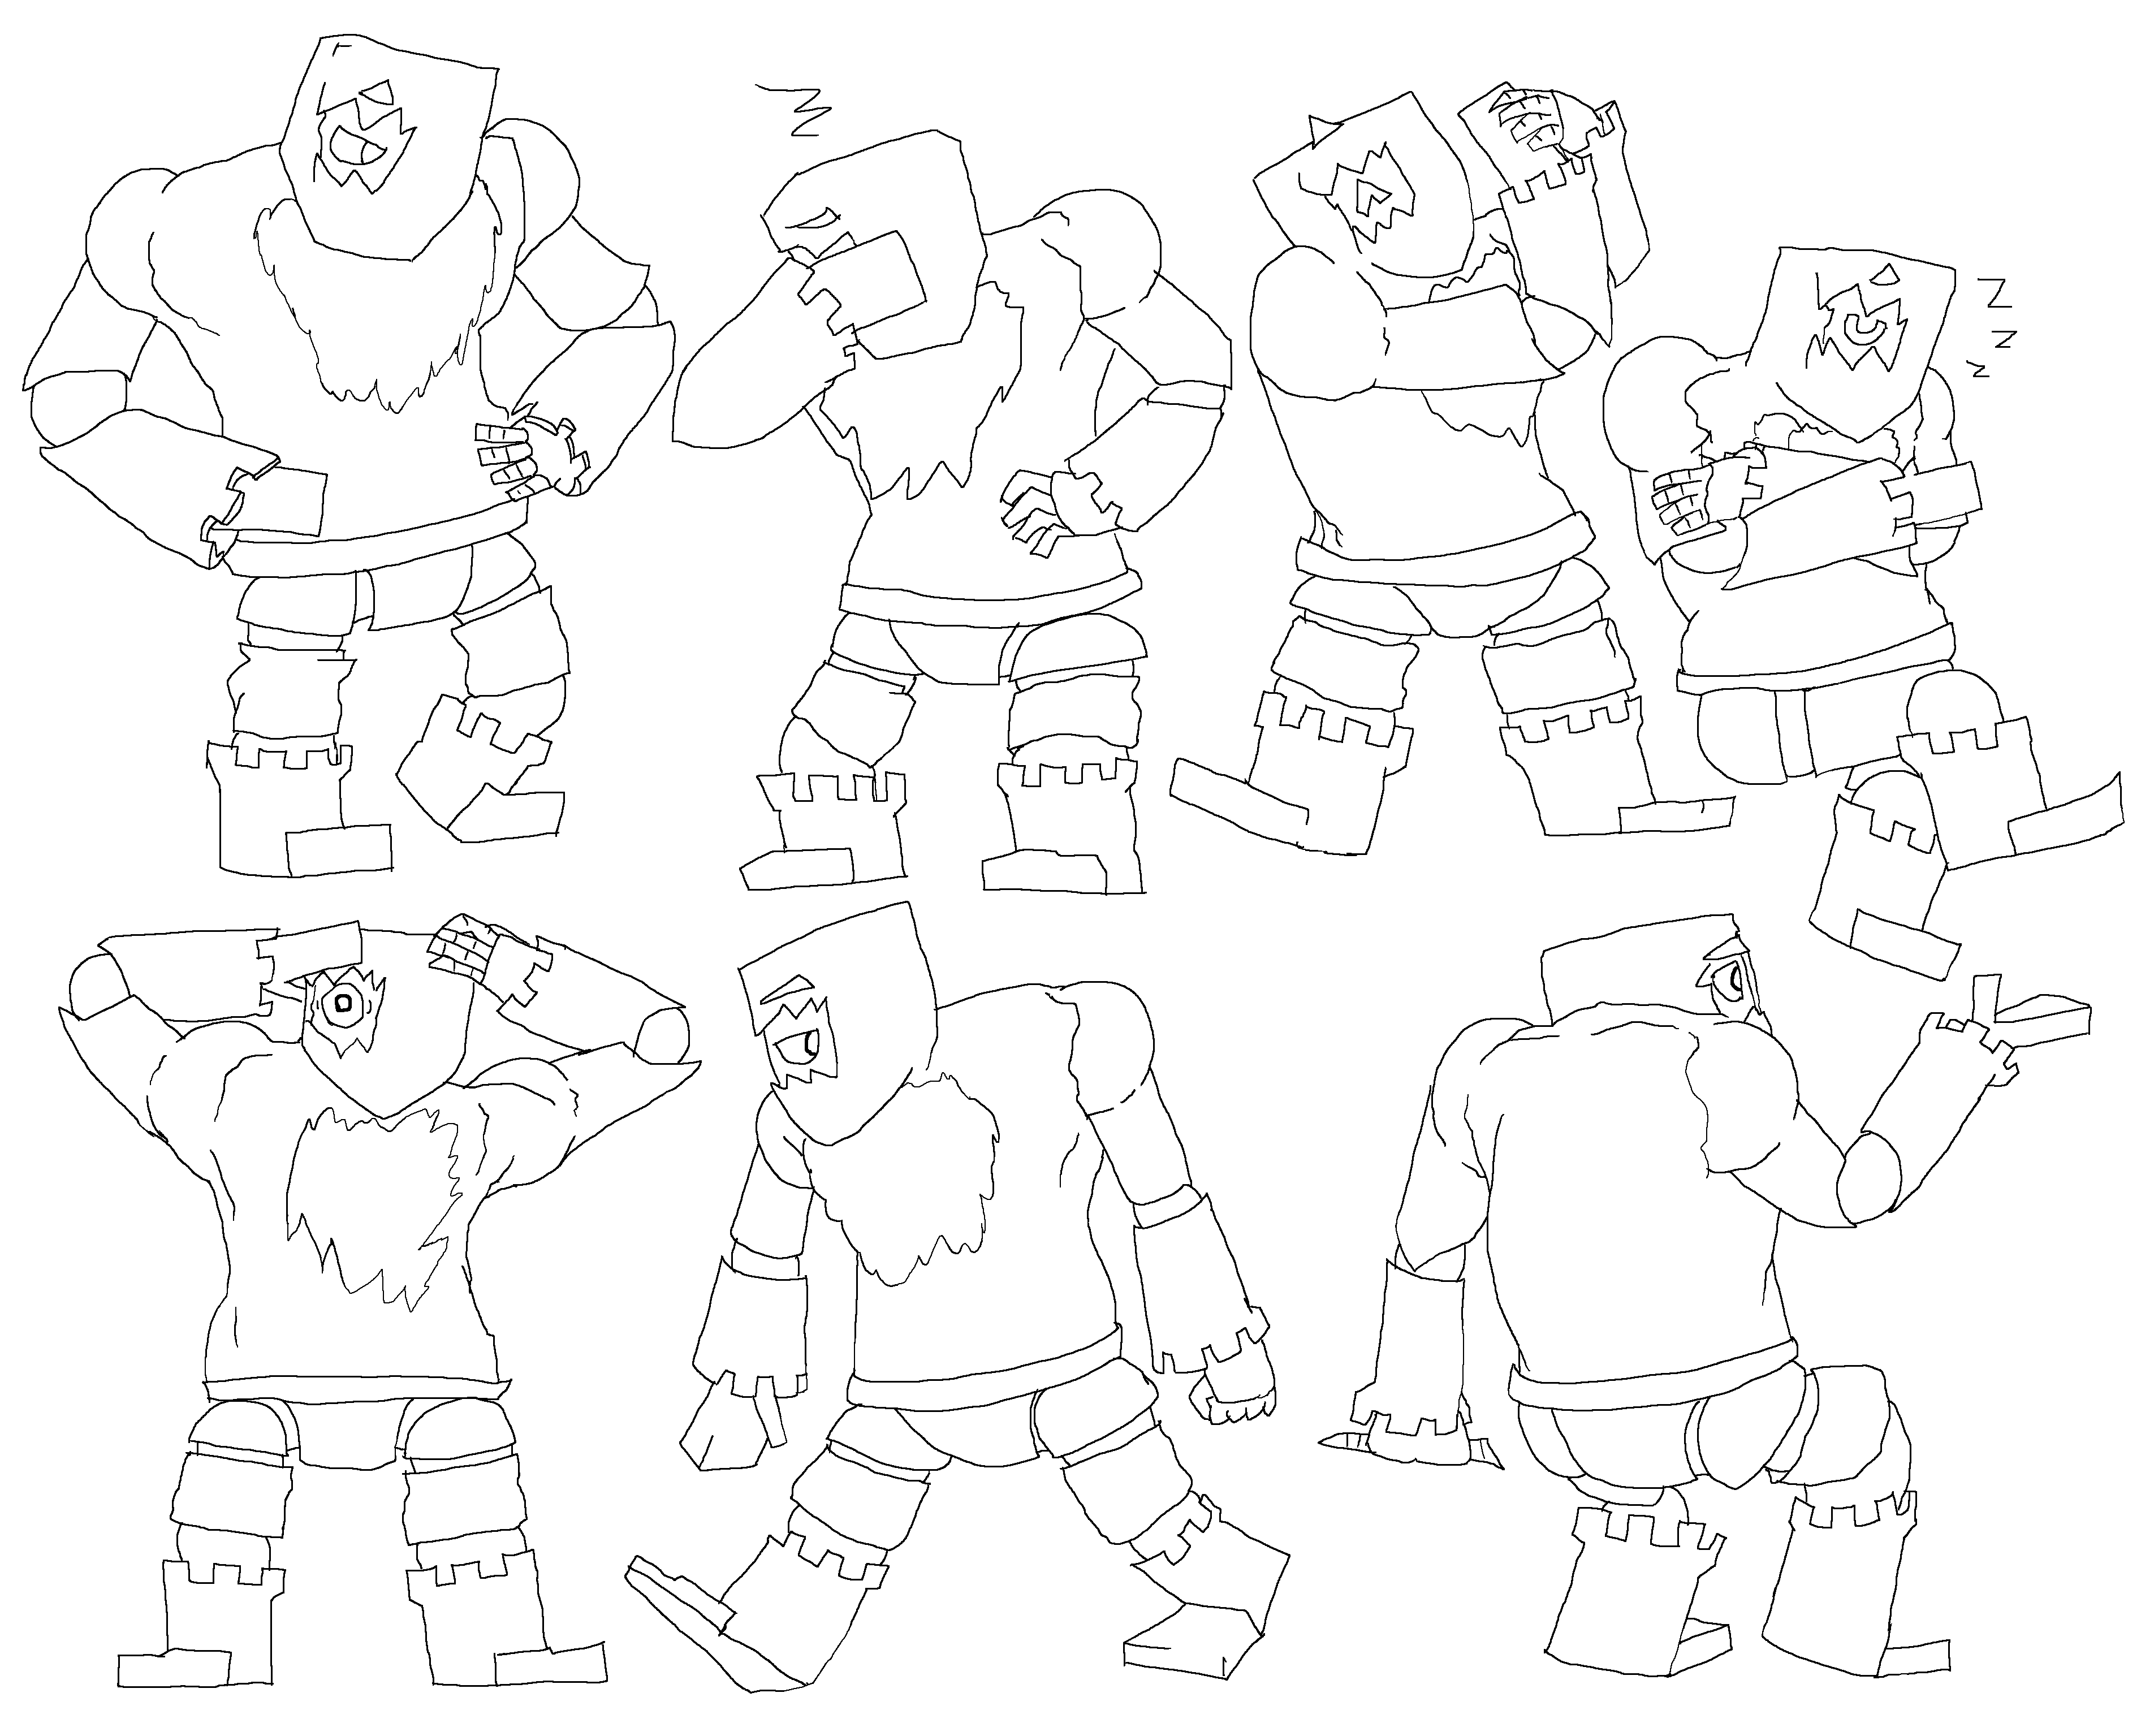 Rockland Character Poses